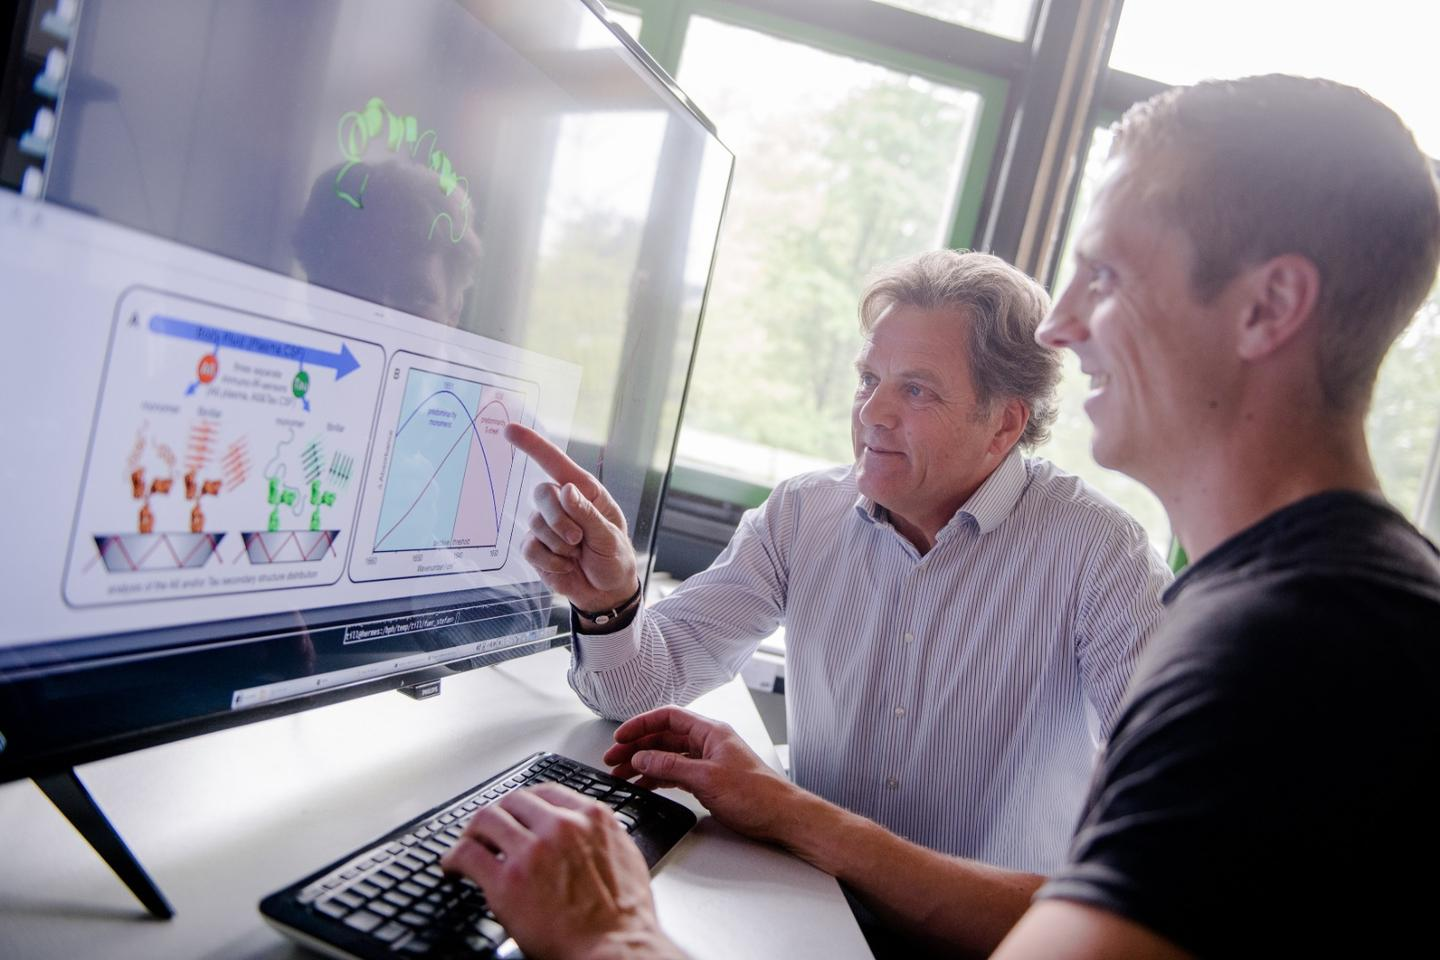 Klaus Gerwert (left) and Andreas Nabers suggest this new two-step diagnostic process will help Alzheimer's clinical trials recruit candidates at early stages in the disease progression, before clinical symptoms appear